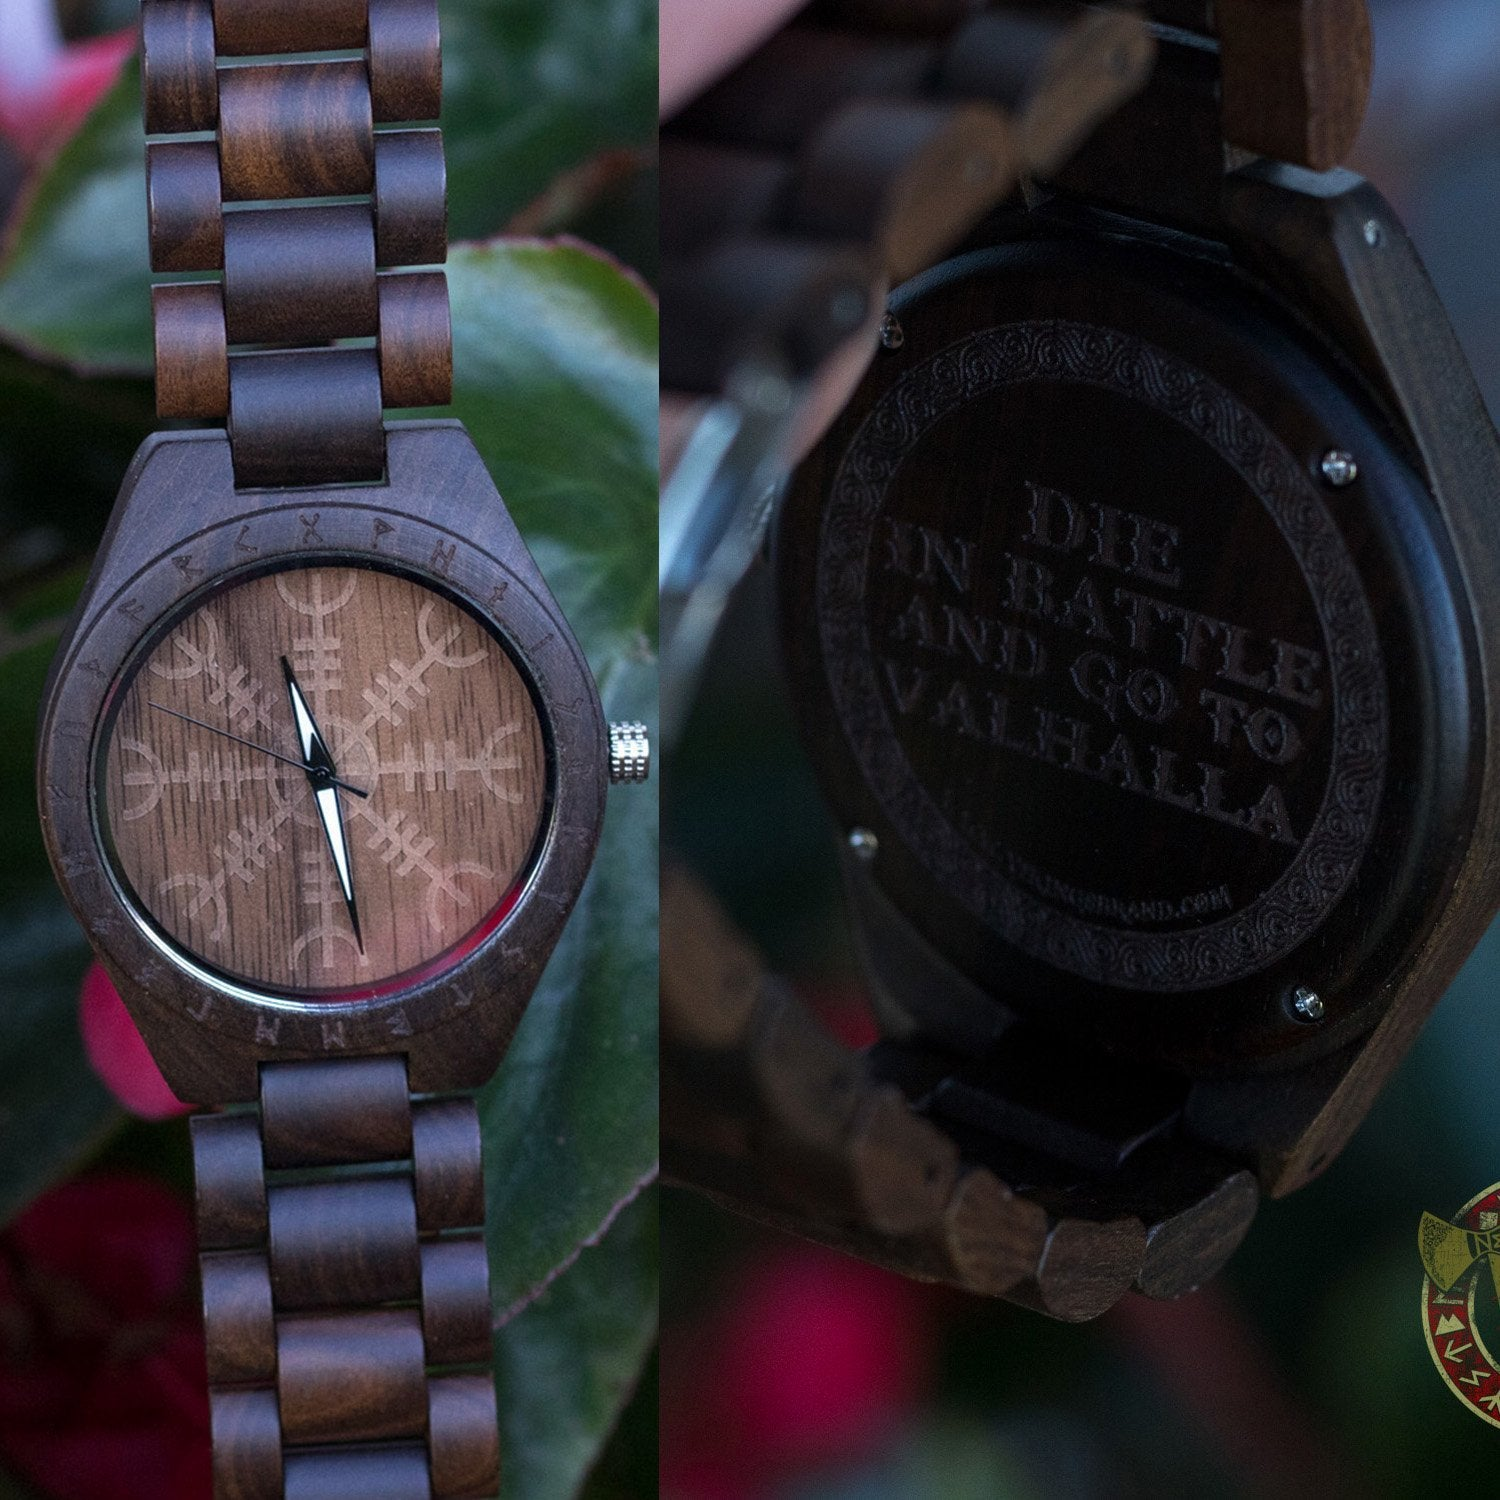 Bard Viking Wooden Watch with Helm of Awe Viking Symbol & Engraved Die in Battle & Go To Valhalla Saying - VikingsBrand